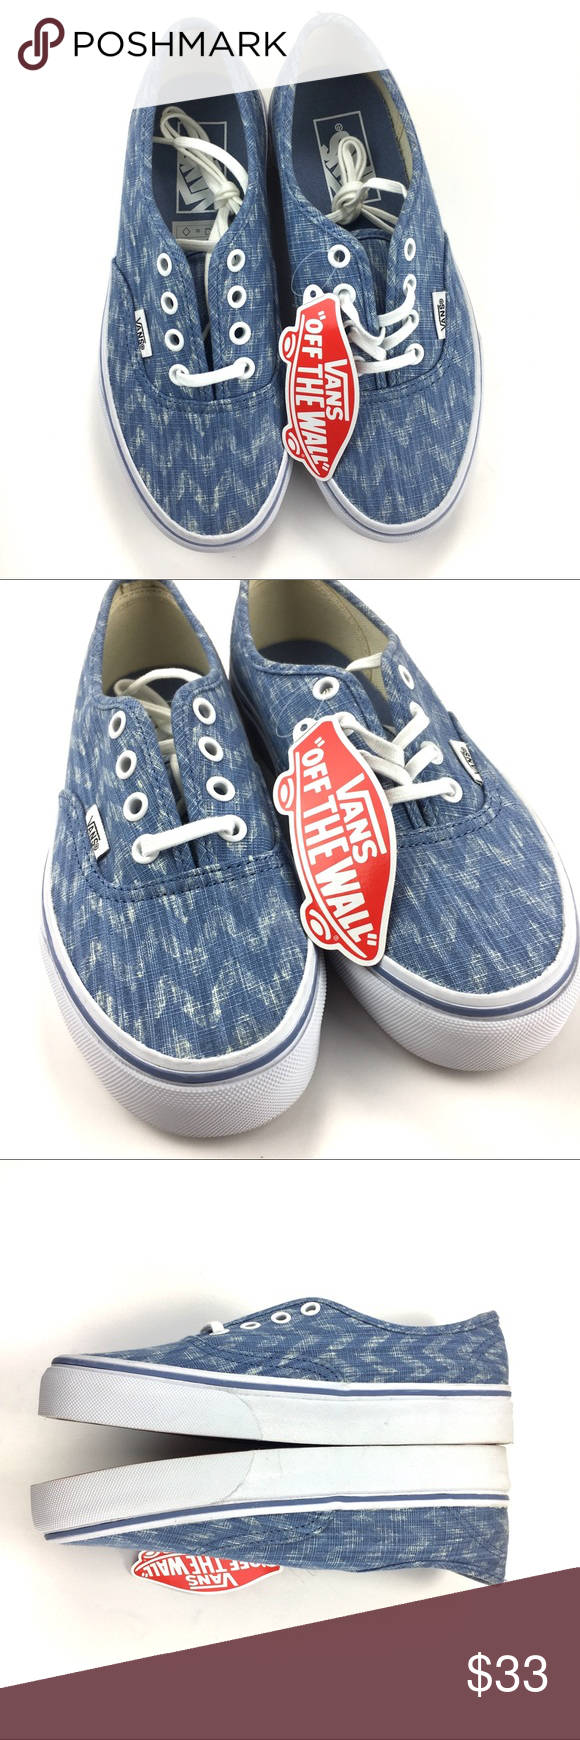 1cddc45722 Vans Authentic Denim Chevron Blue True White 5.5 Vans Authentic Denim  Chevron Blue and True White Low Top Lace Up Size 4 Mens 5.5 Womens  Condition is new in ...